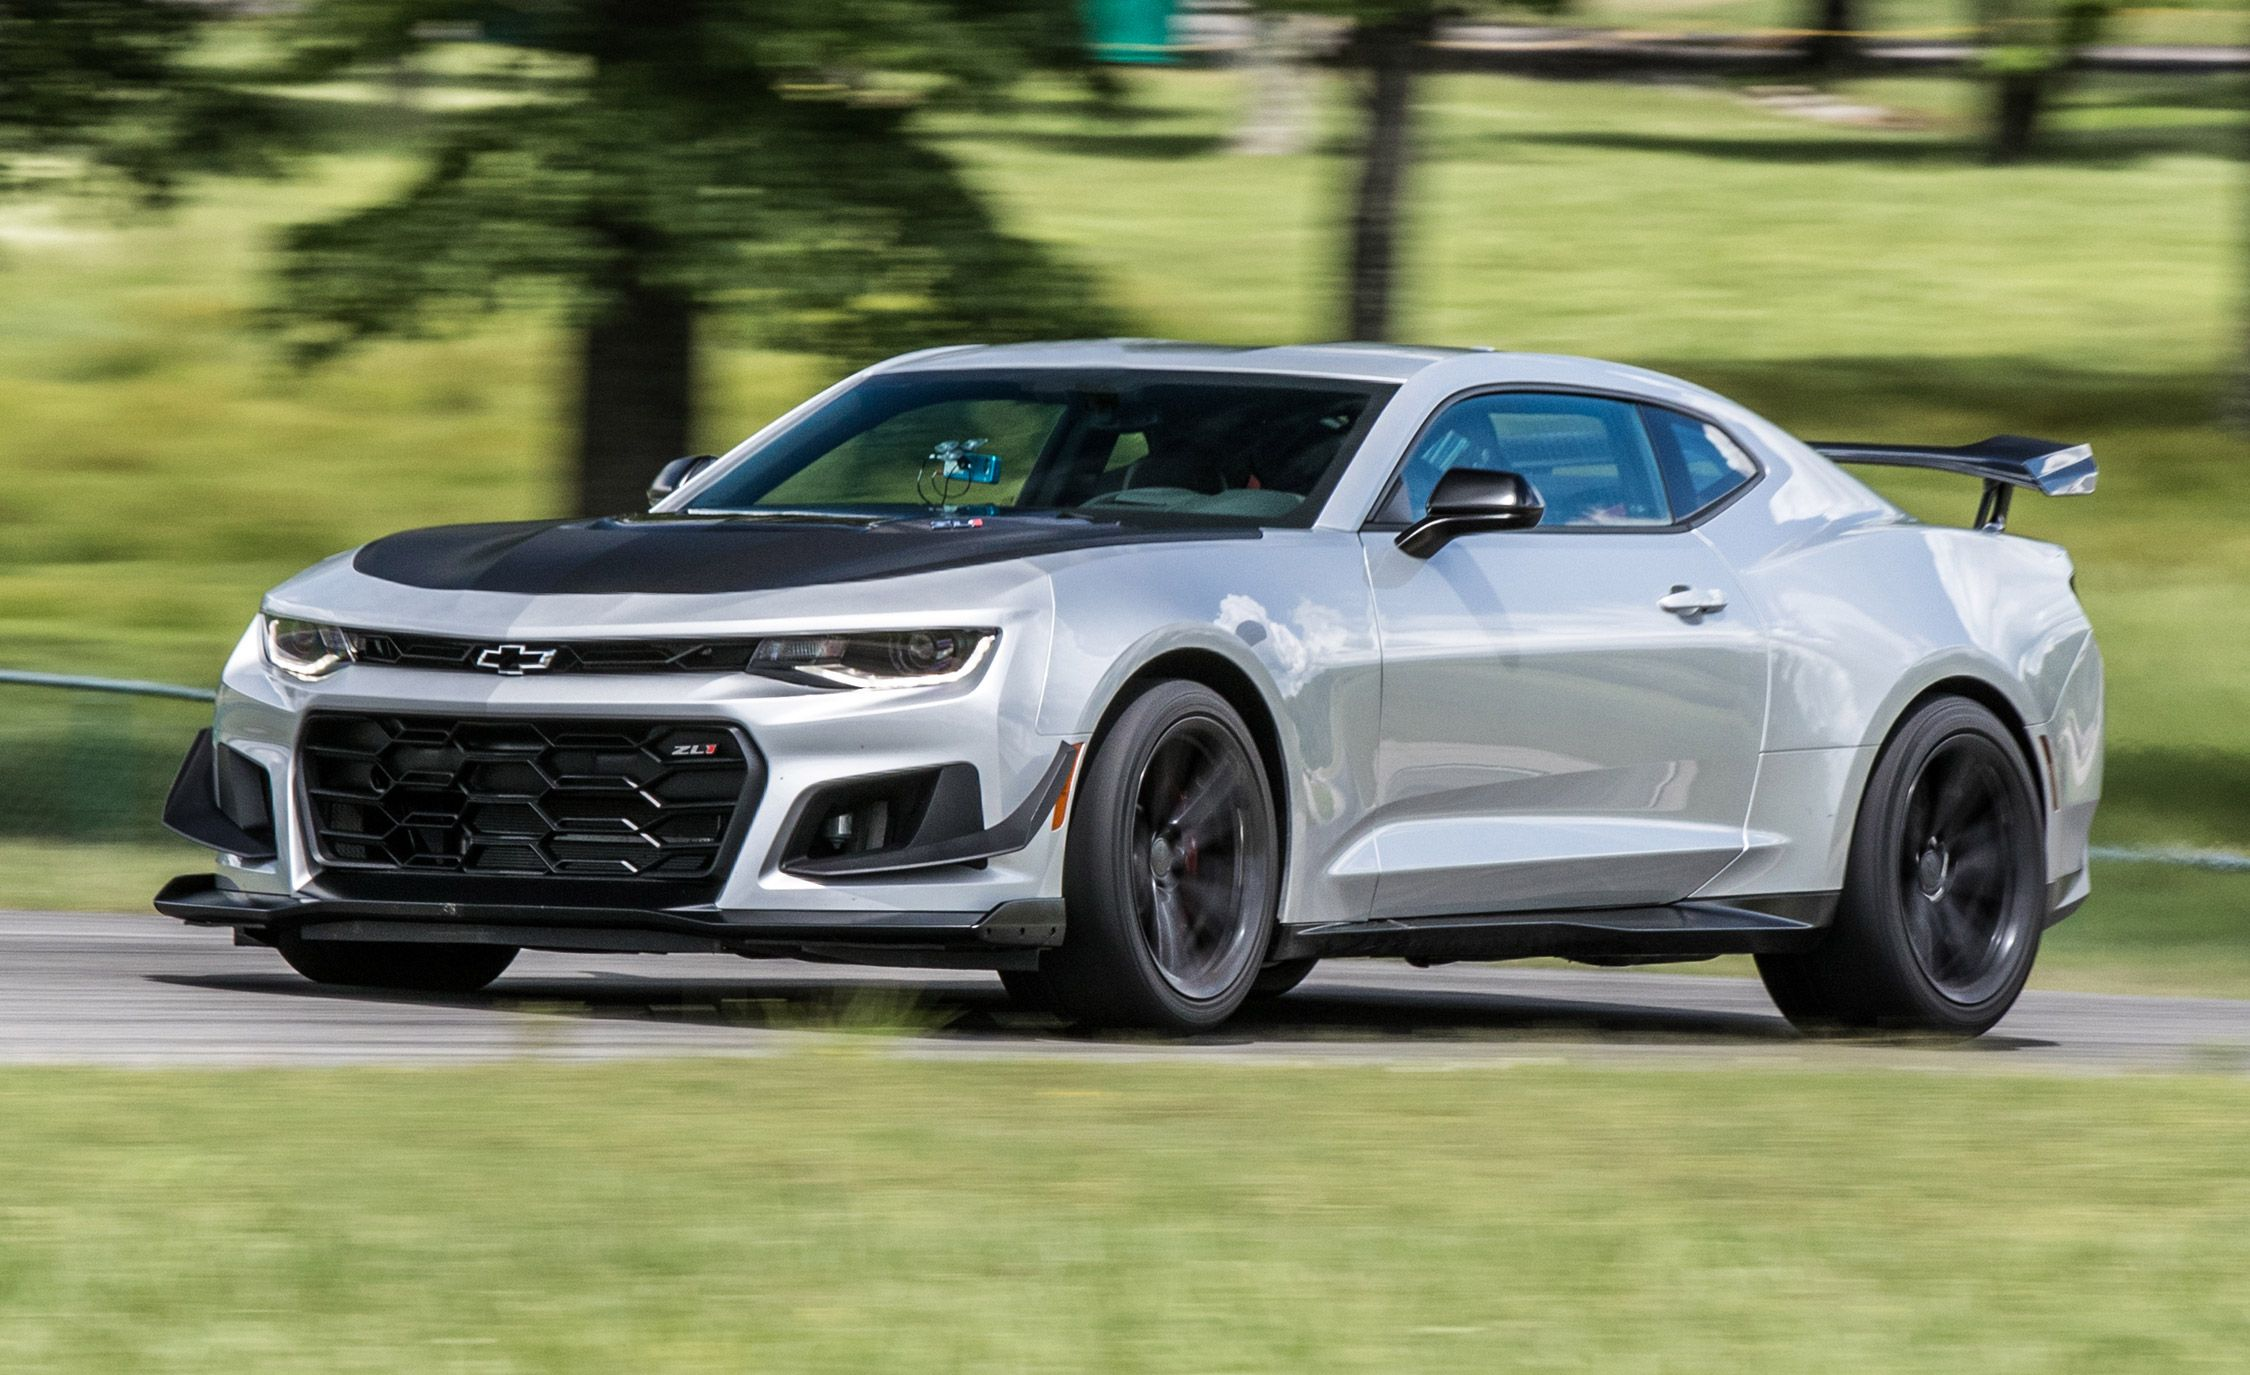 2019 Chevrolet Camaro Zl1 Reviews Price Photos And Specs Car Driver